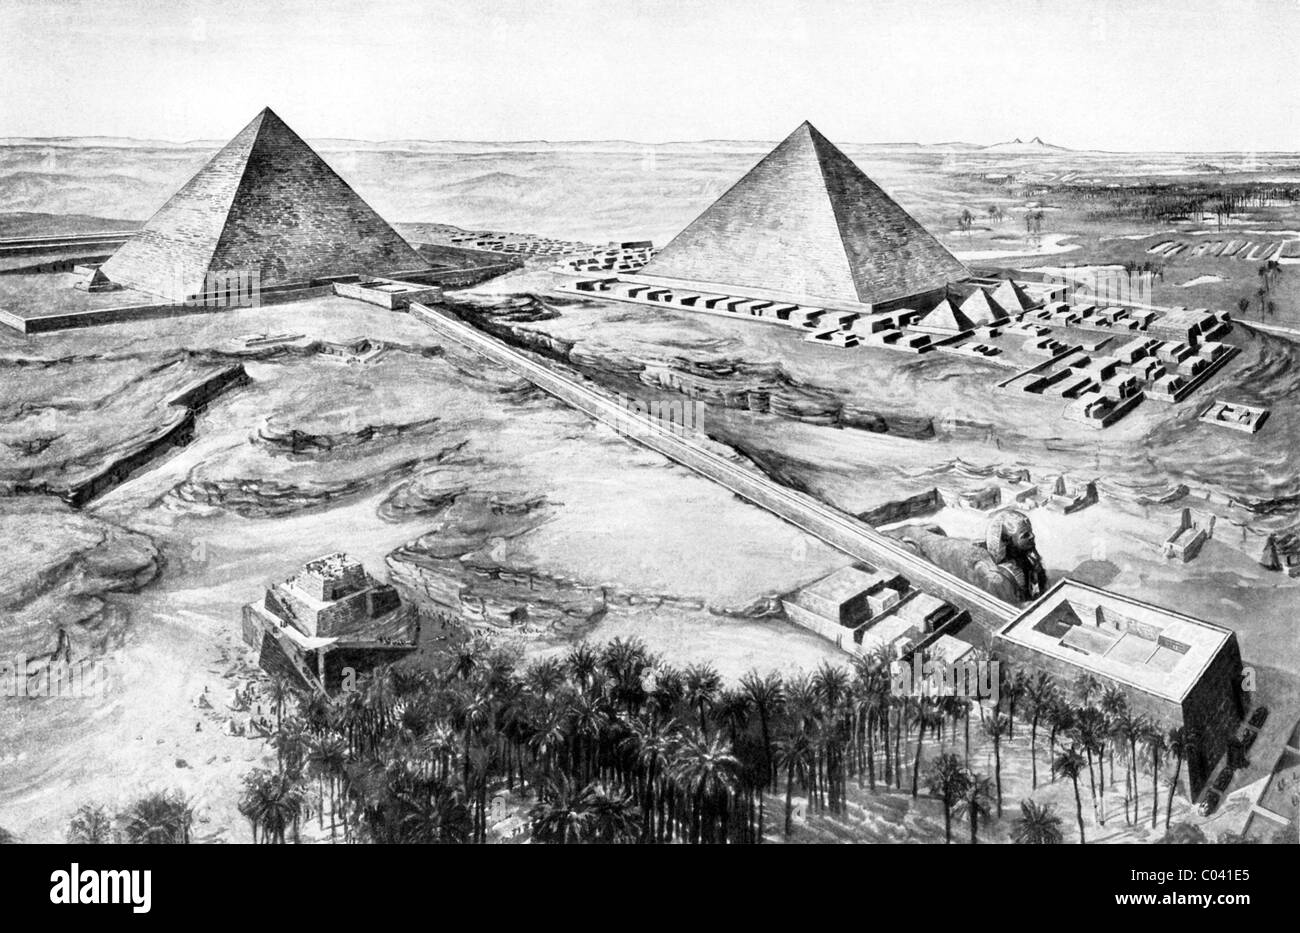 This early 1920s illustration shows the first and second pyramids at Giza in Lower Egypt, with the Great Sphinx - Stock Image